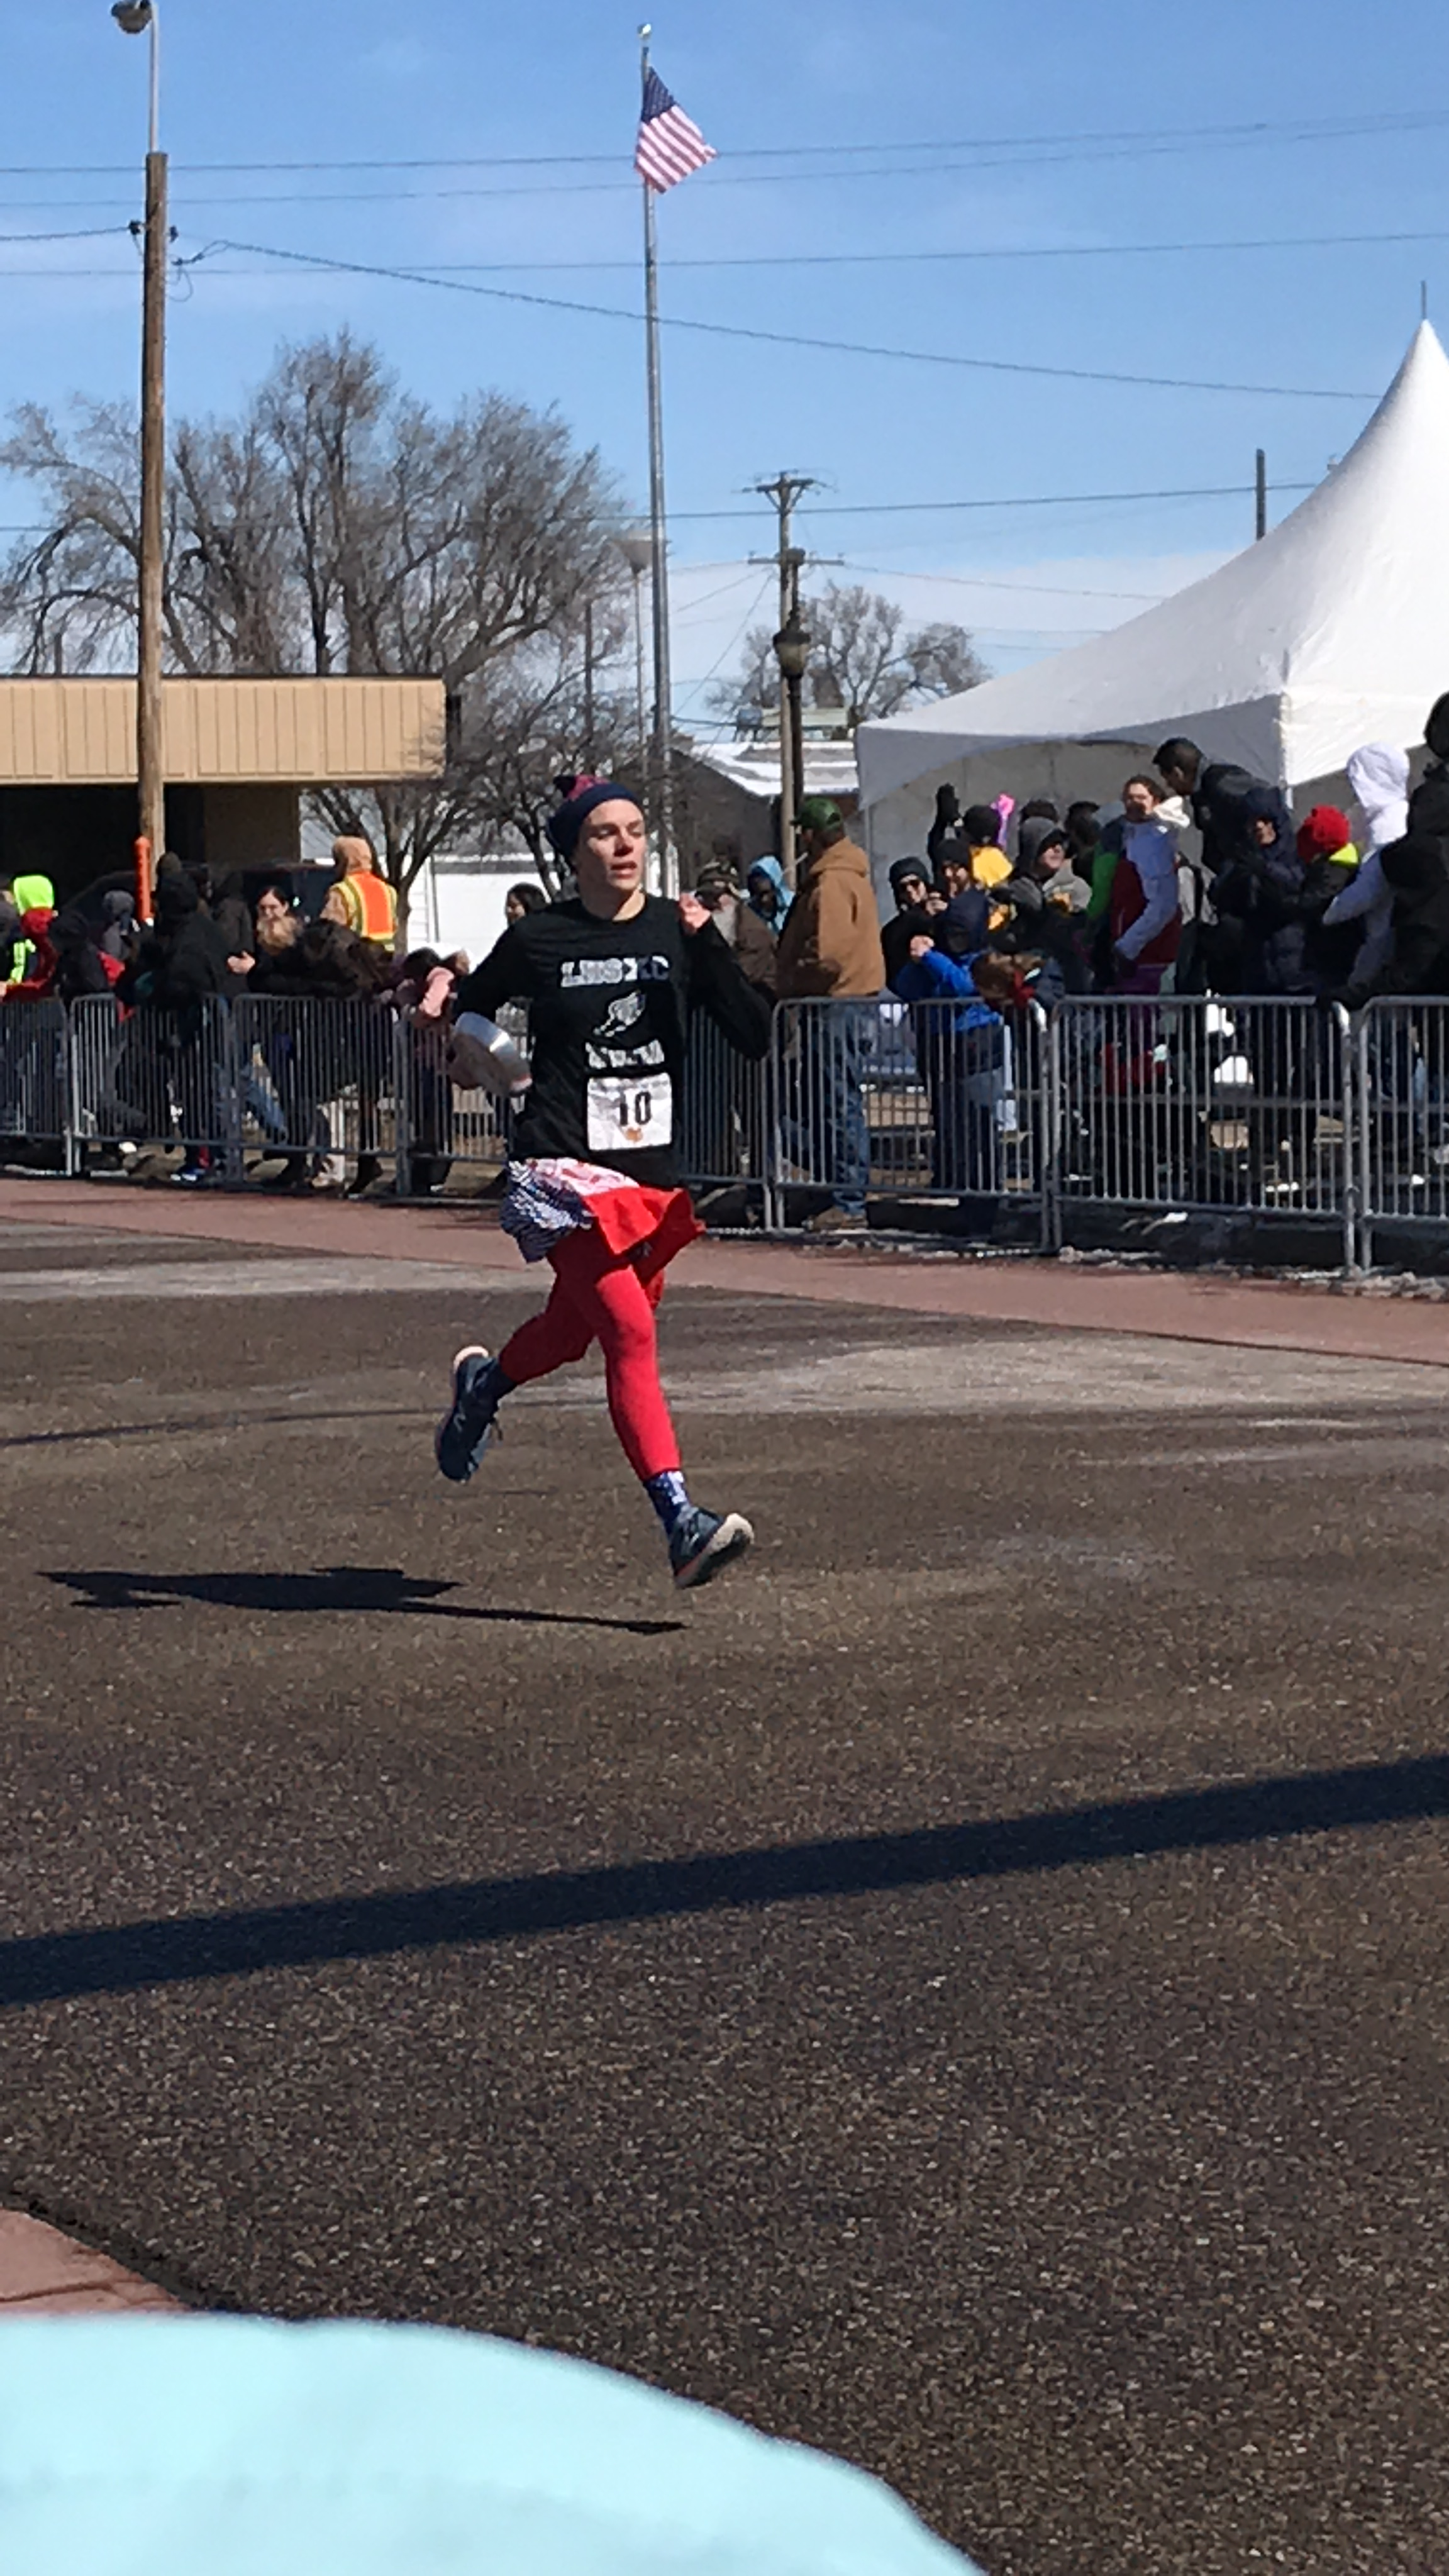 Lapinski Wins her Second Pancake Day Race in Two Years, Claims International Title